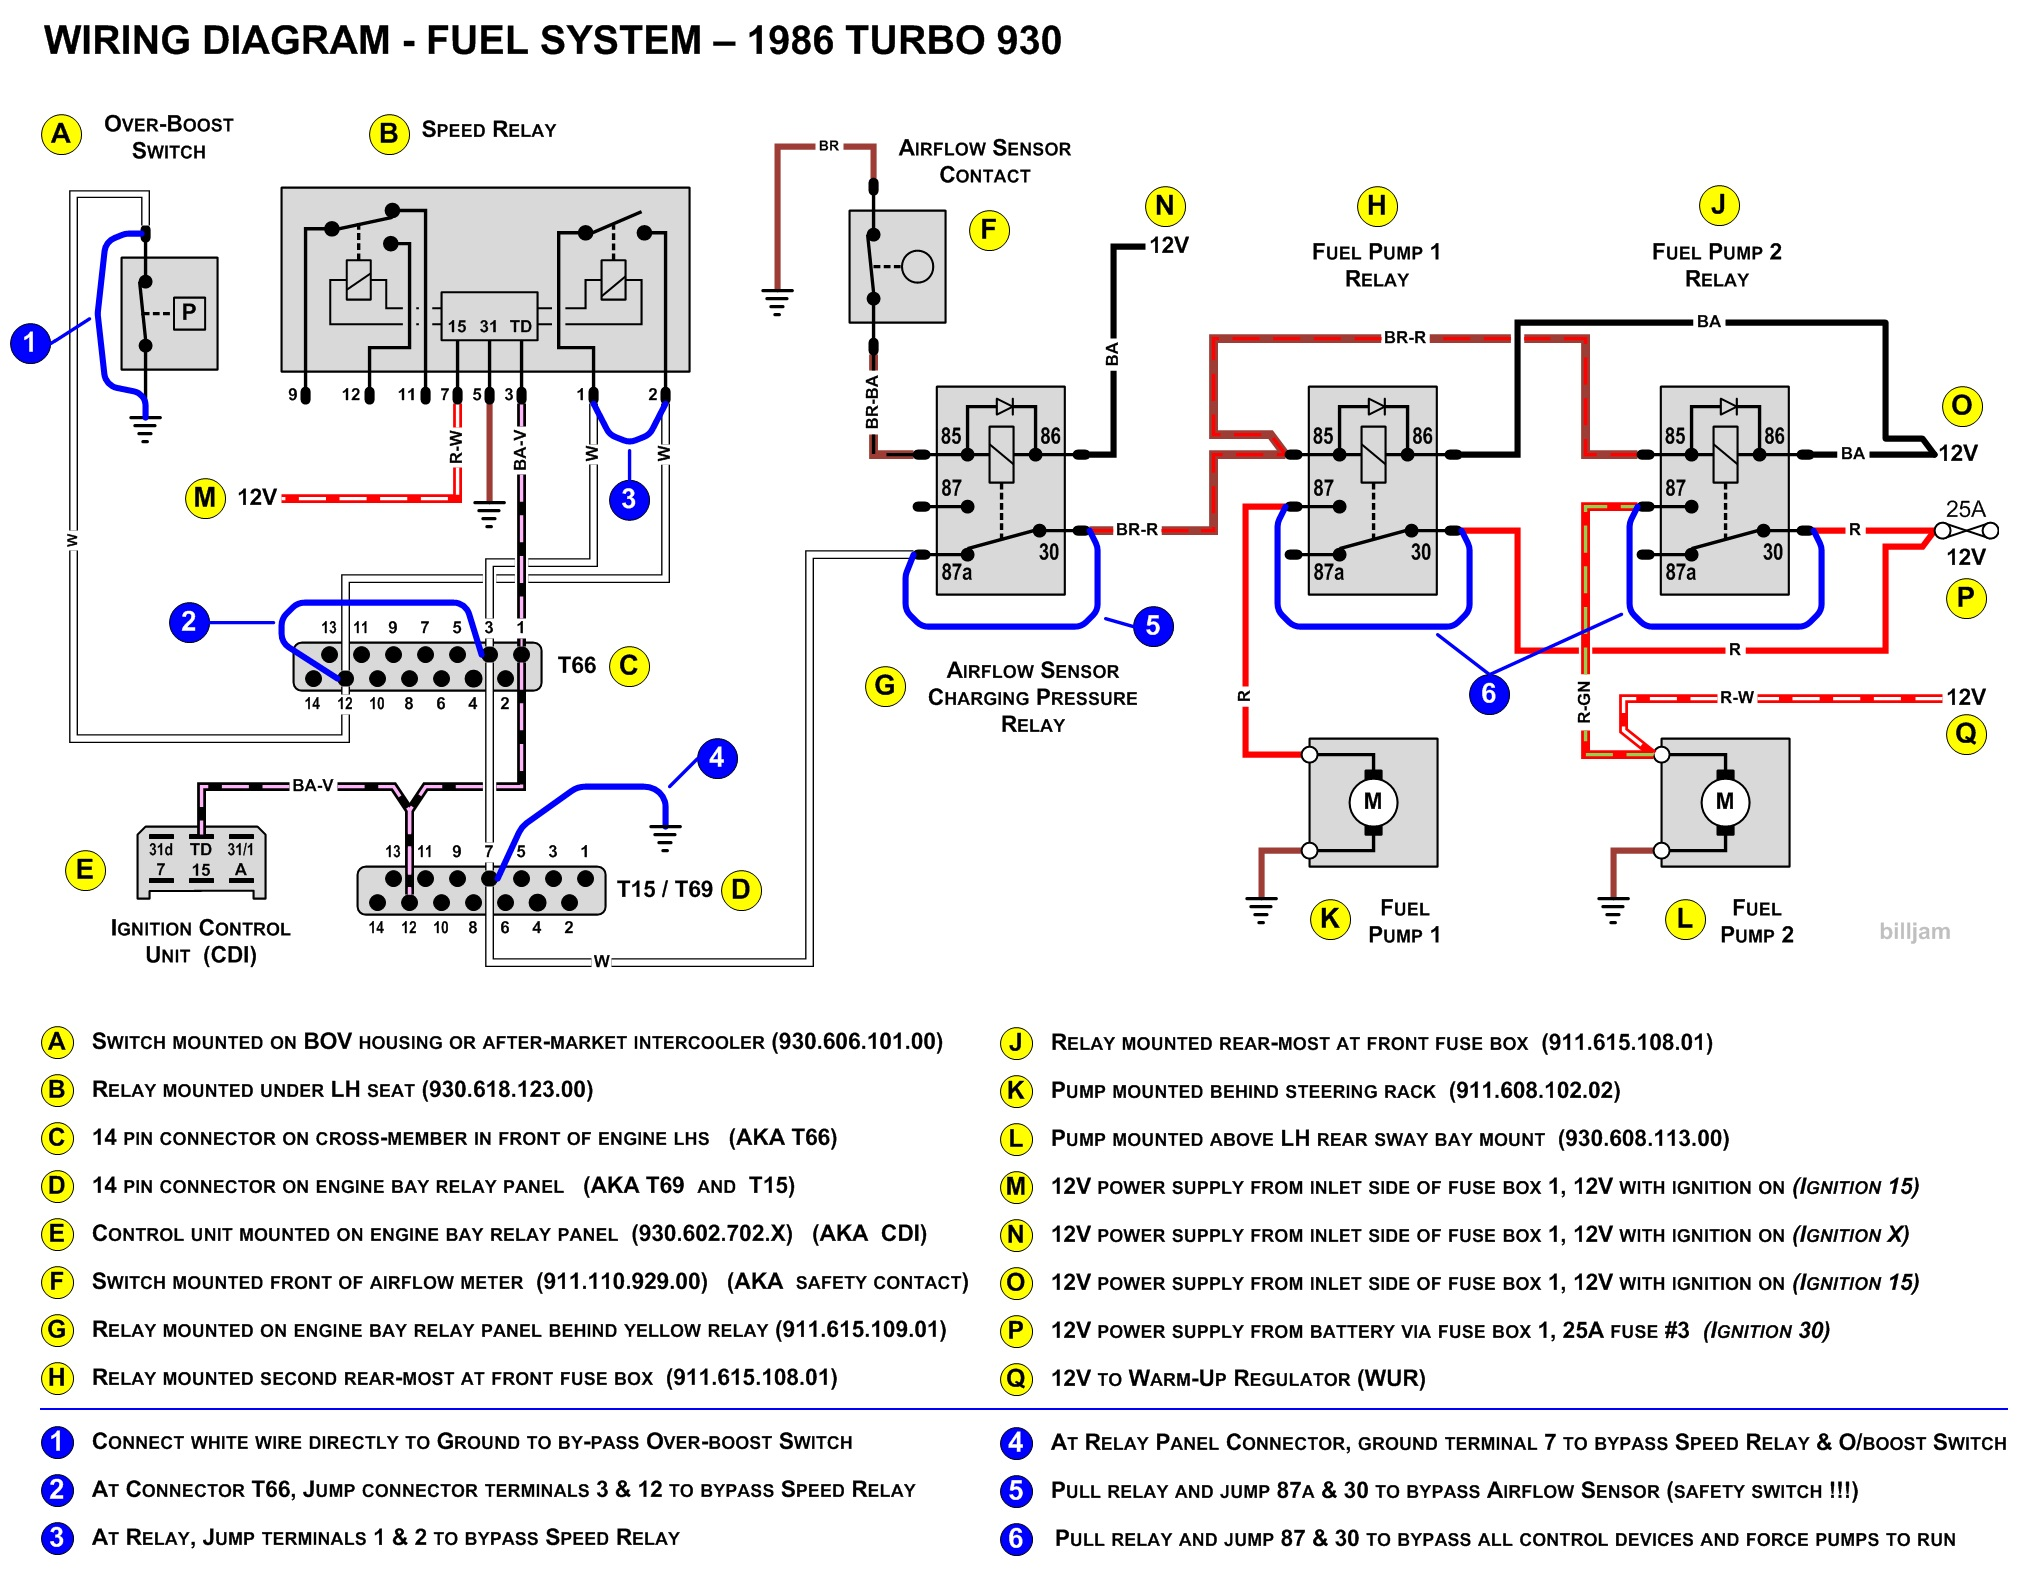 1986 Gmc Fuel Wiring Diagram Will Be A Thing Gm Radio 1988 Pelican Parts Forums View Single Post Made Fuse Box Label For Rh Pelicanparts Com Truck Electrical Diagrams